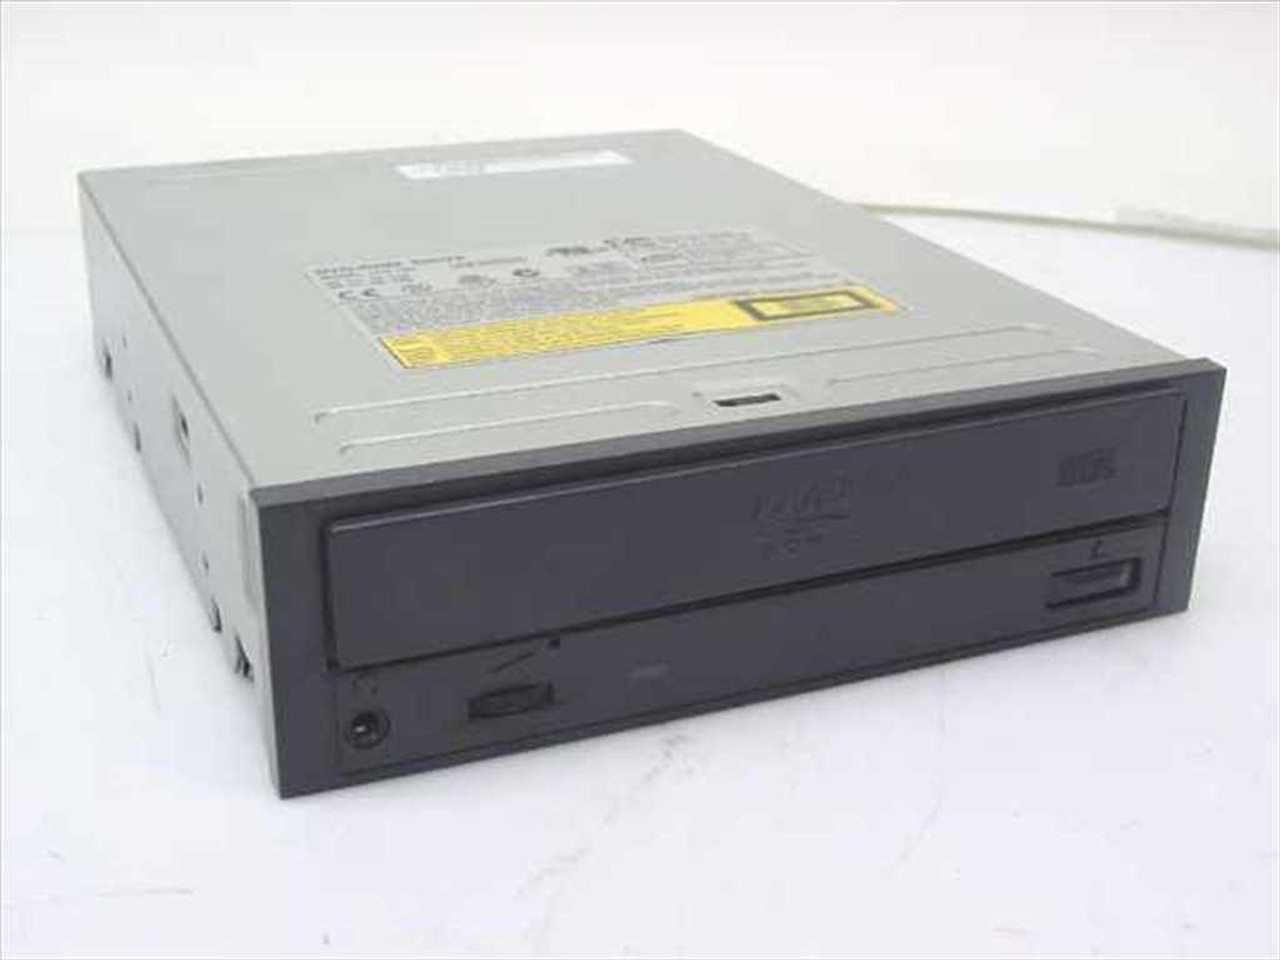 LITE ON DVD ROM LTD163 WINDOWS 7 64BIT DRIVER DOWNLOAD